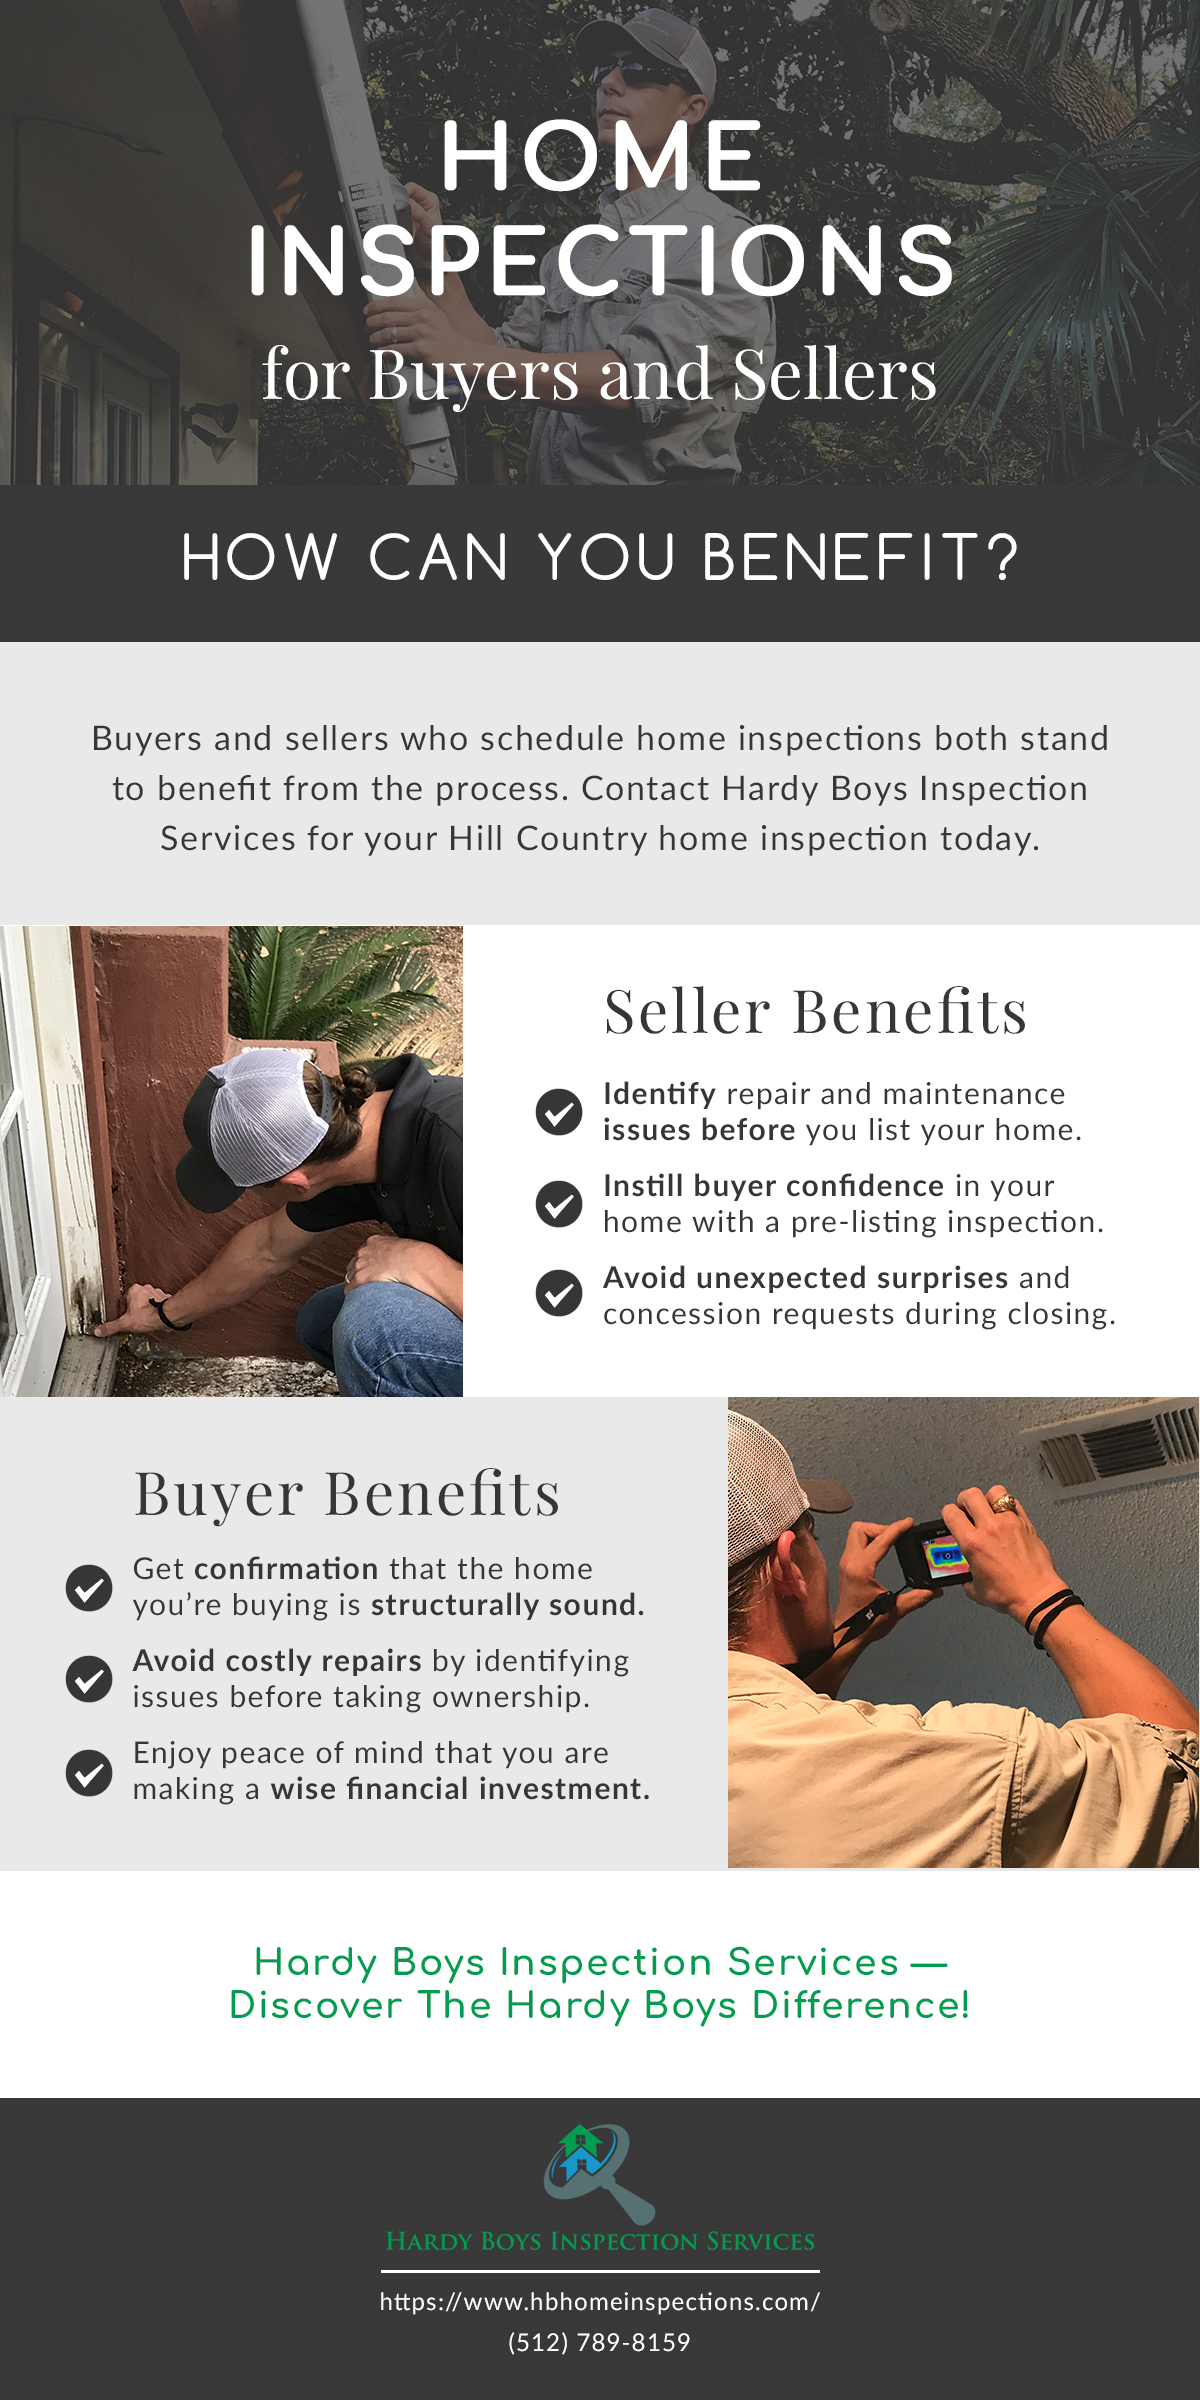 Home Inspections for Buyers and Sellers